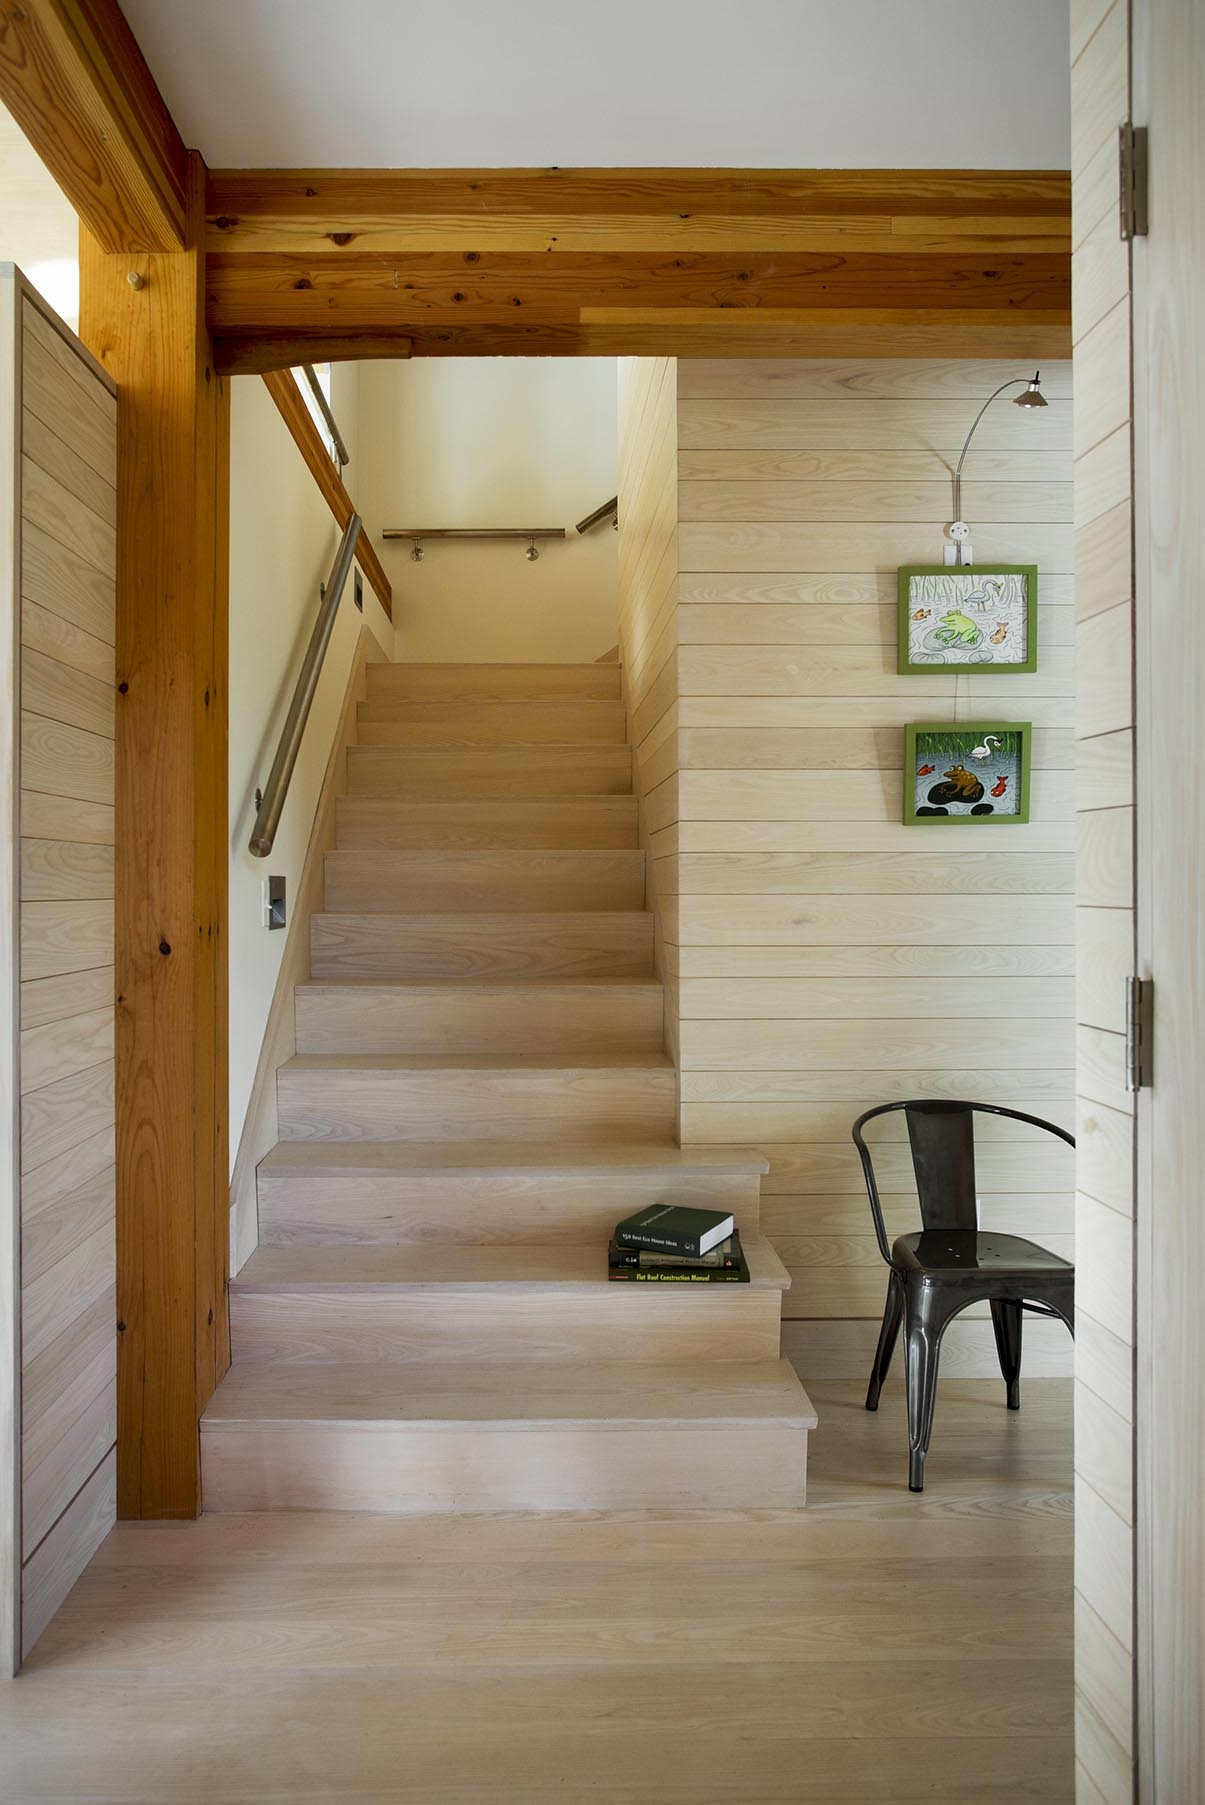 Style Guide For Stairs Bensonwood   Converting Spiral Staircase To Straight   Wood   House   Stair Case   U Shaped   Loft Conversion